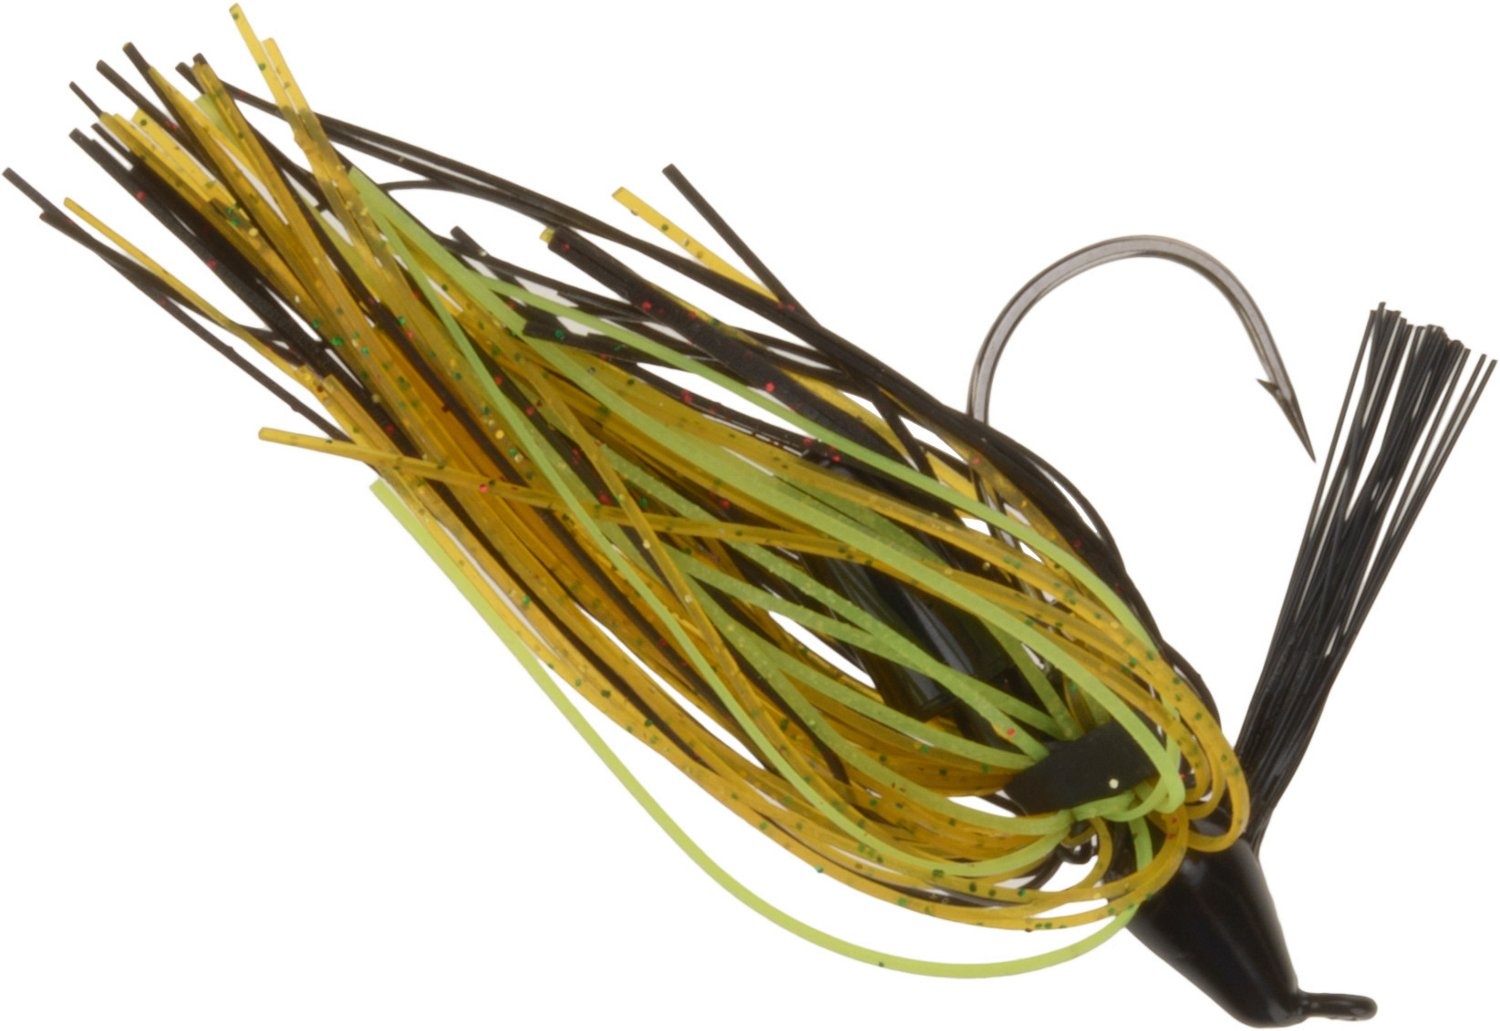 Hoppy's Rattling Brush Bug 1/4 oz. Wire Bait - view number 1